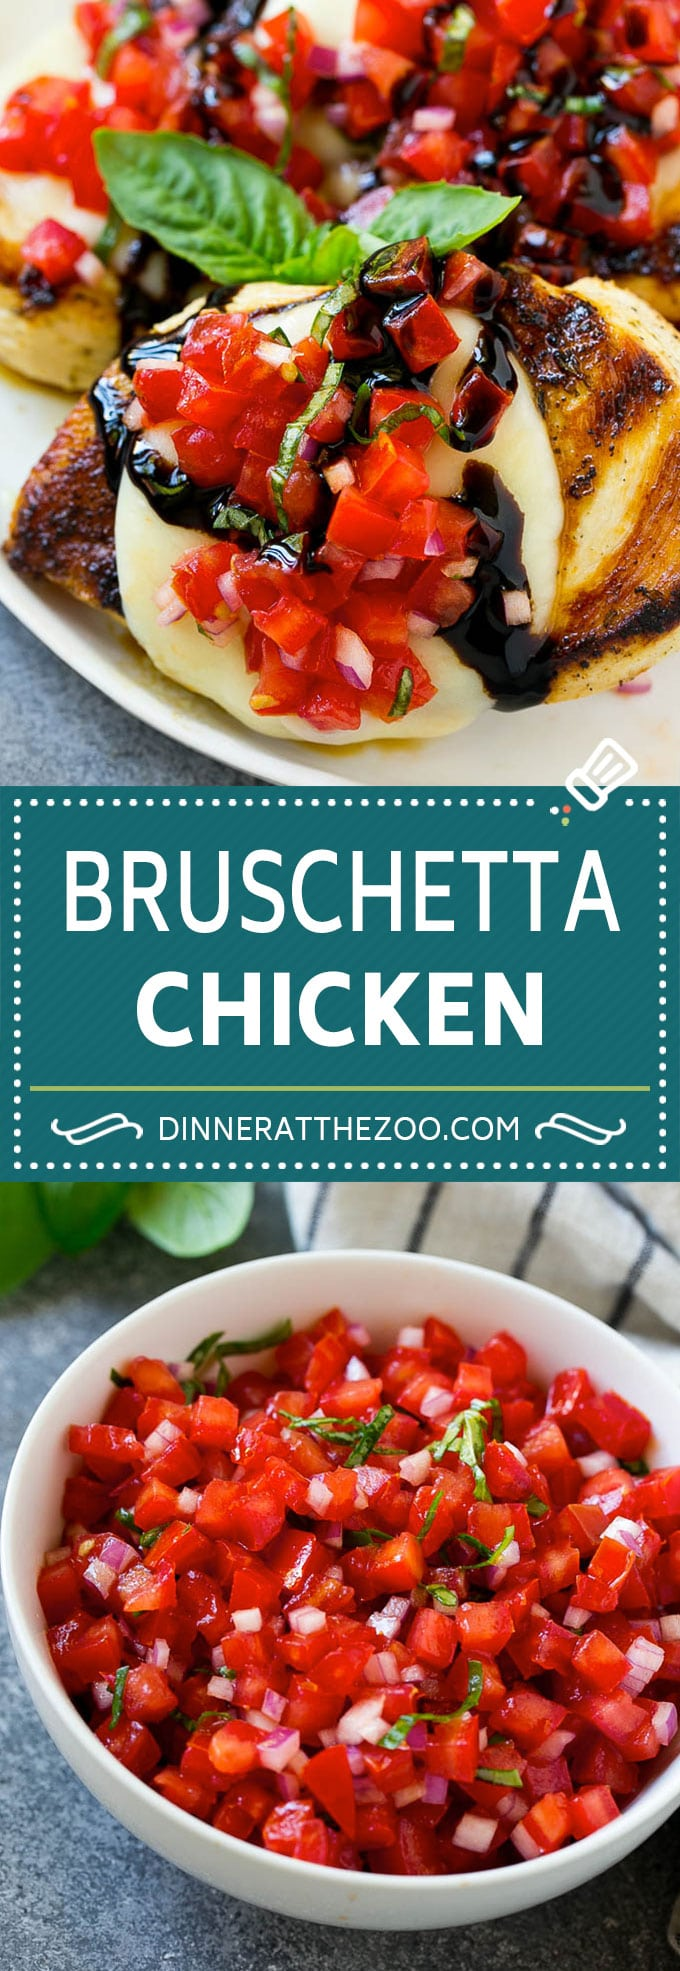 Bruschetta Chicken Recipe | Grilled Chicken | Tomato Chicken | Chicken Bruschetta #chicken #grilling #tomato #basil #dinner #lowcarb #dinneratthezoo